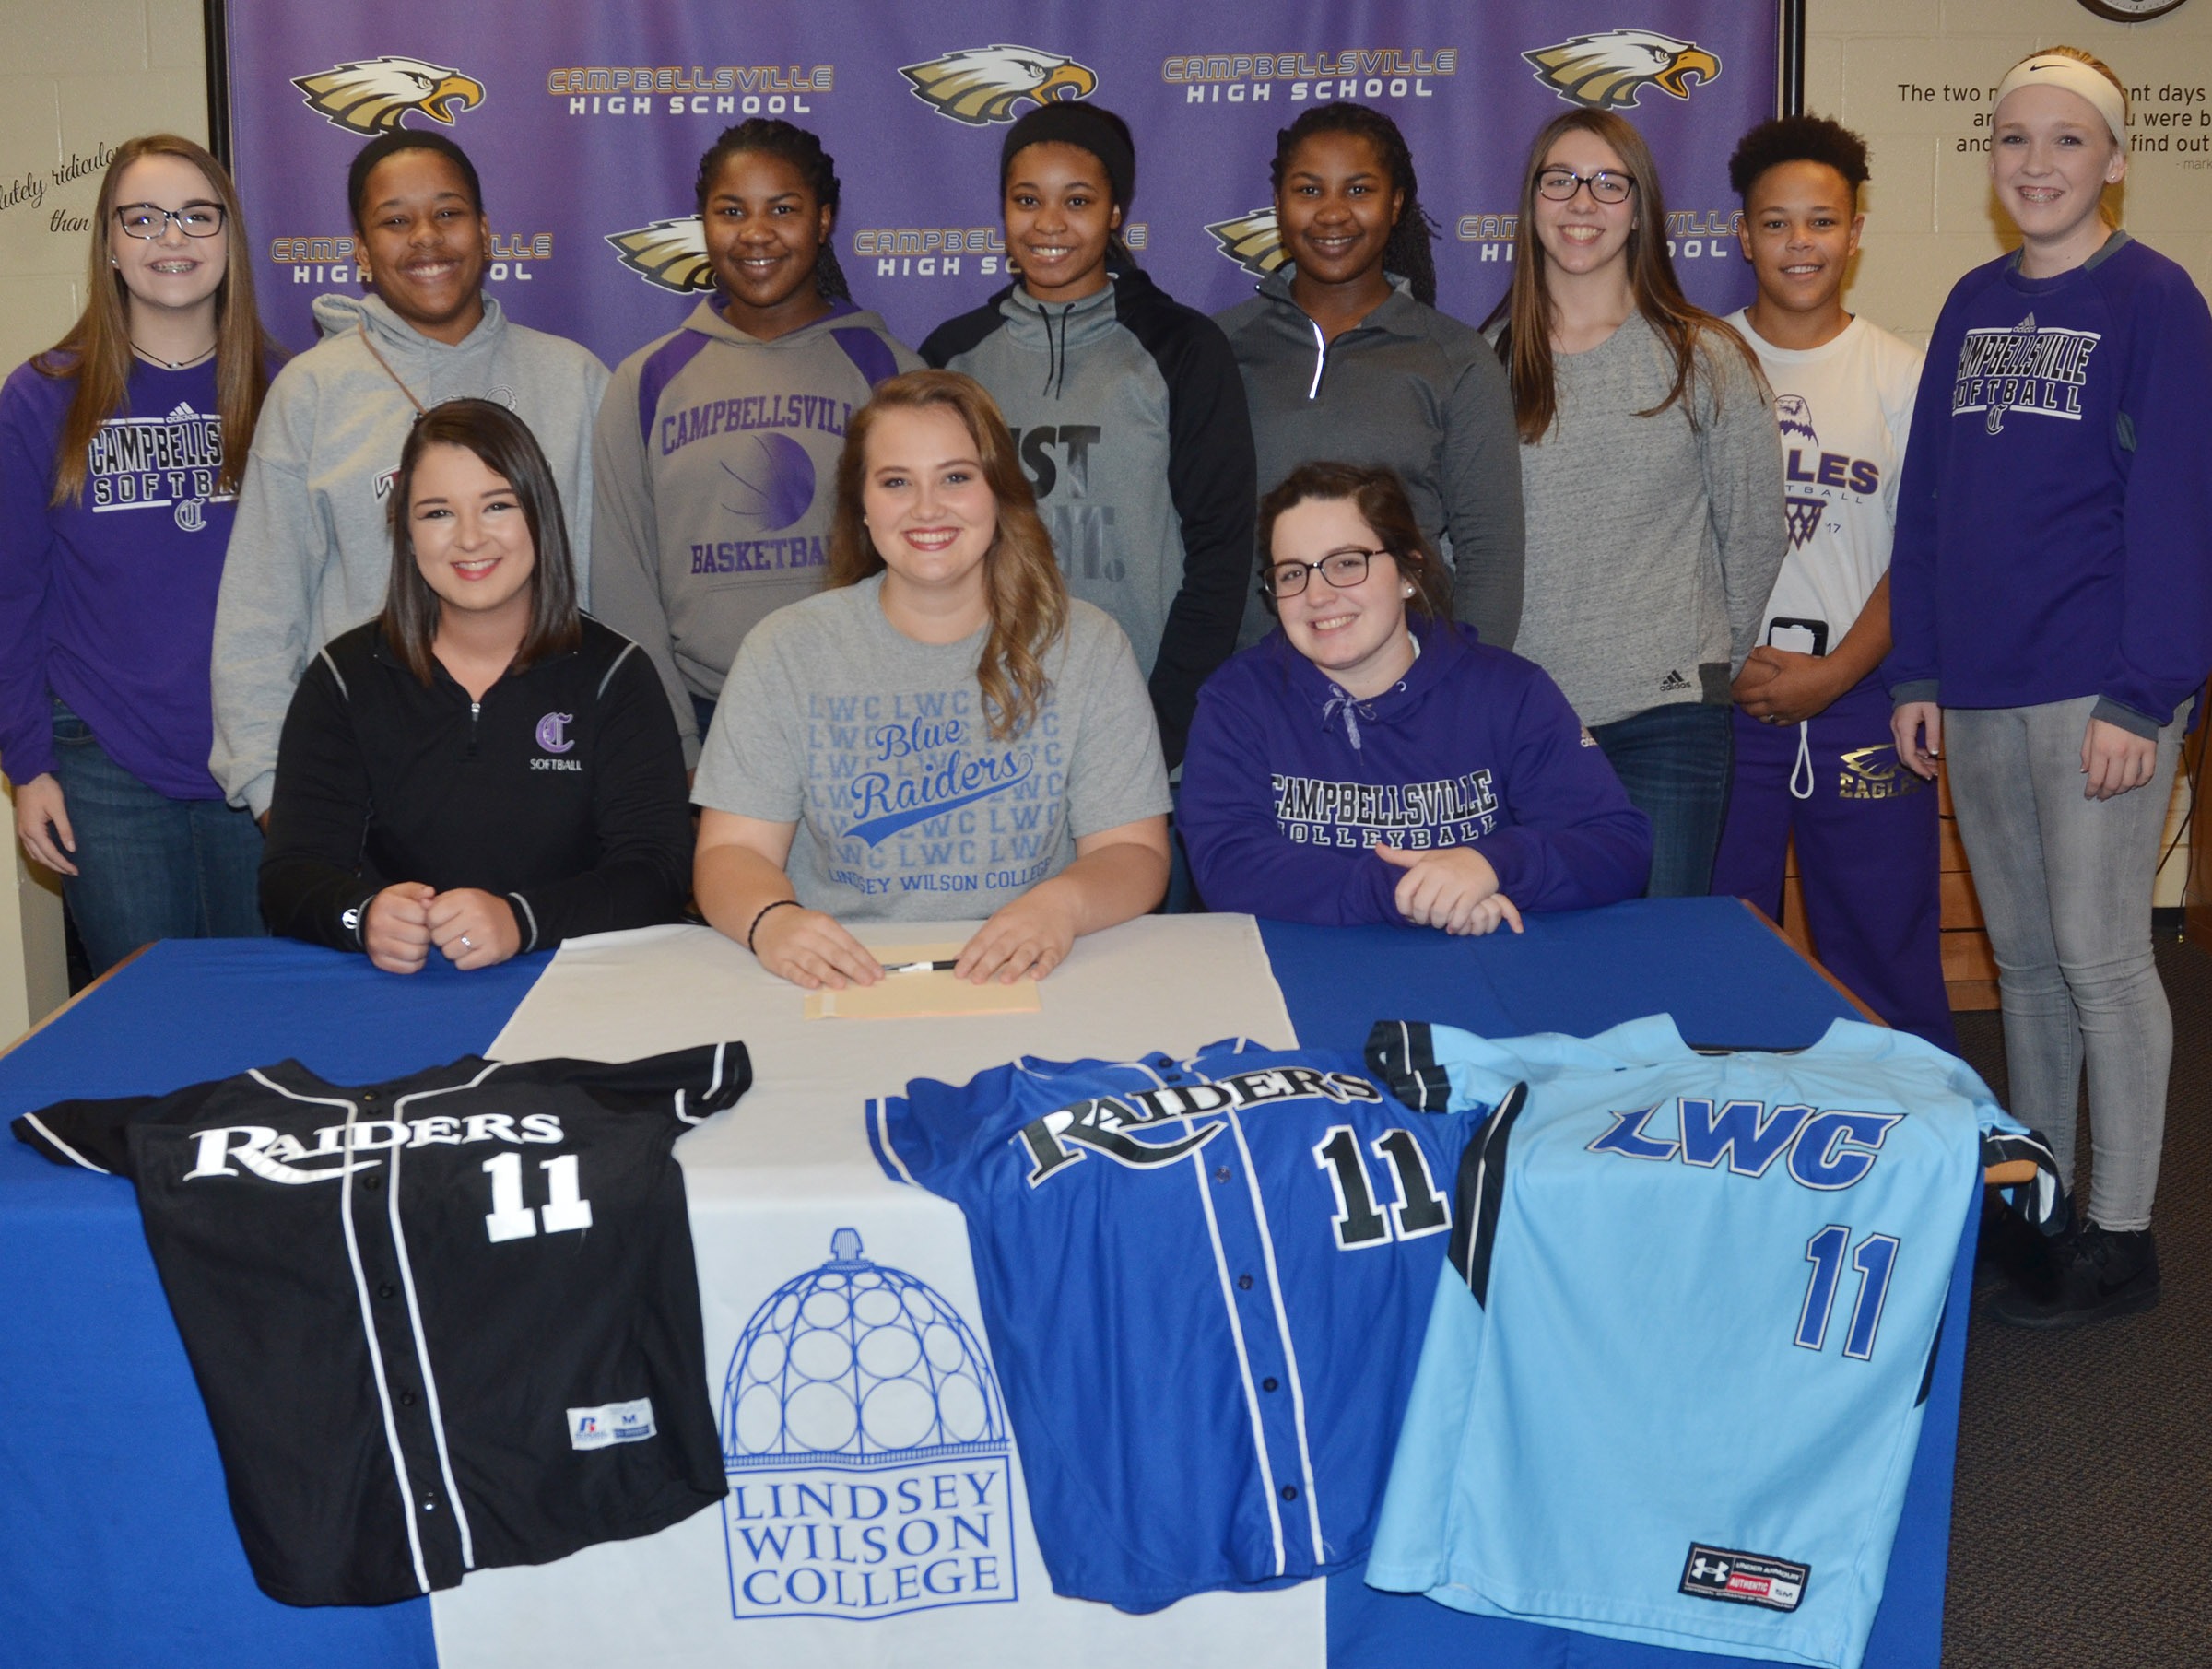 CHS senior Brenna Wethington has signed to continue her softball career at Lindsey Wilson College. She is pictured with her CHS softball teammates. Front, from left, senior Kailey Morris, Wethington and junior Caitlin Bright. Back, Campbellsville Middle School eighth-grader Kenzi Forbis, juniors Kayla Young, Kiyah Barnett, Vonnea Smith and Nena Barnett, CMS eighth-grader Abi Wiedewitsch, sophomore Dee Simpson and CMS eighth-grader Catlyn Clausen.